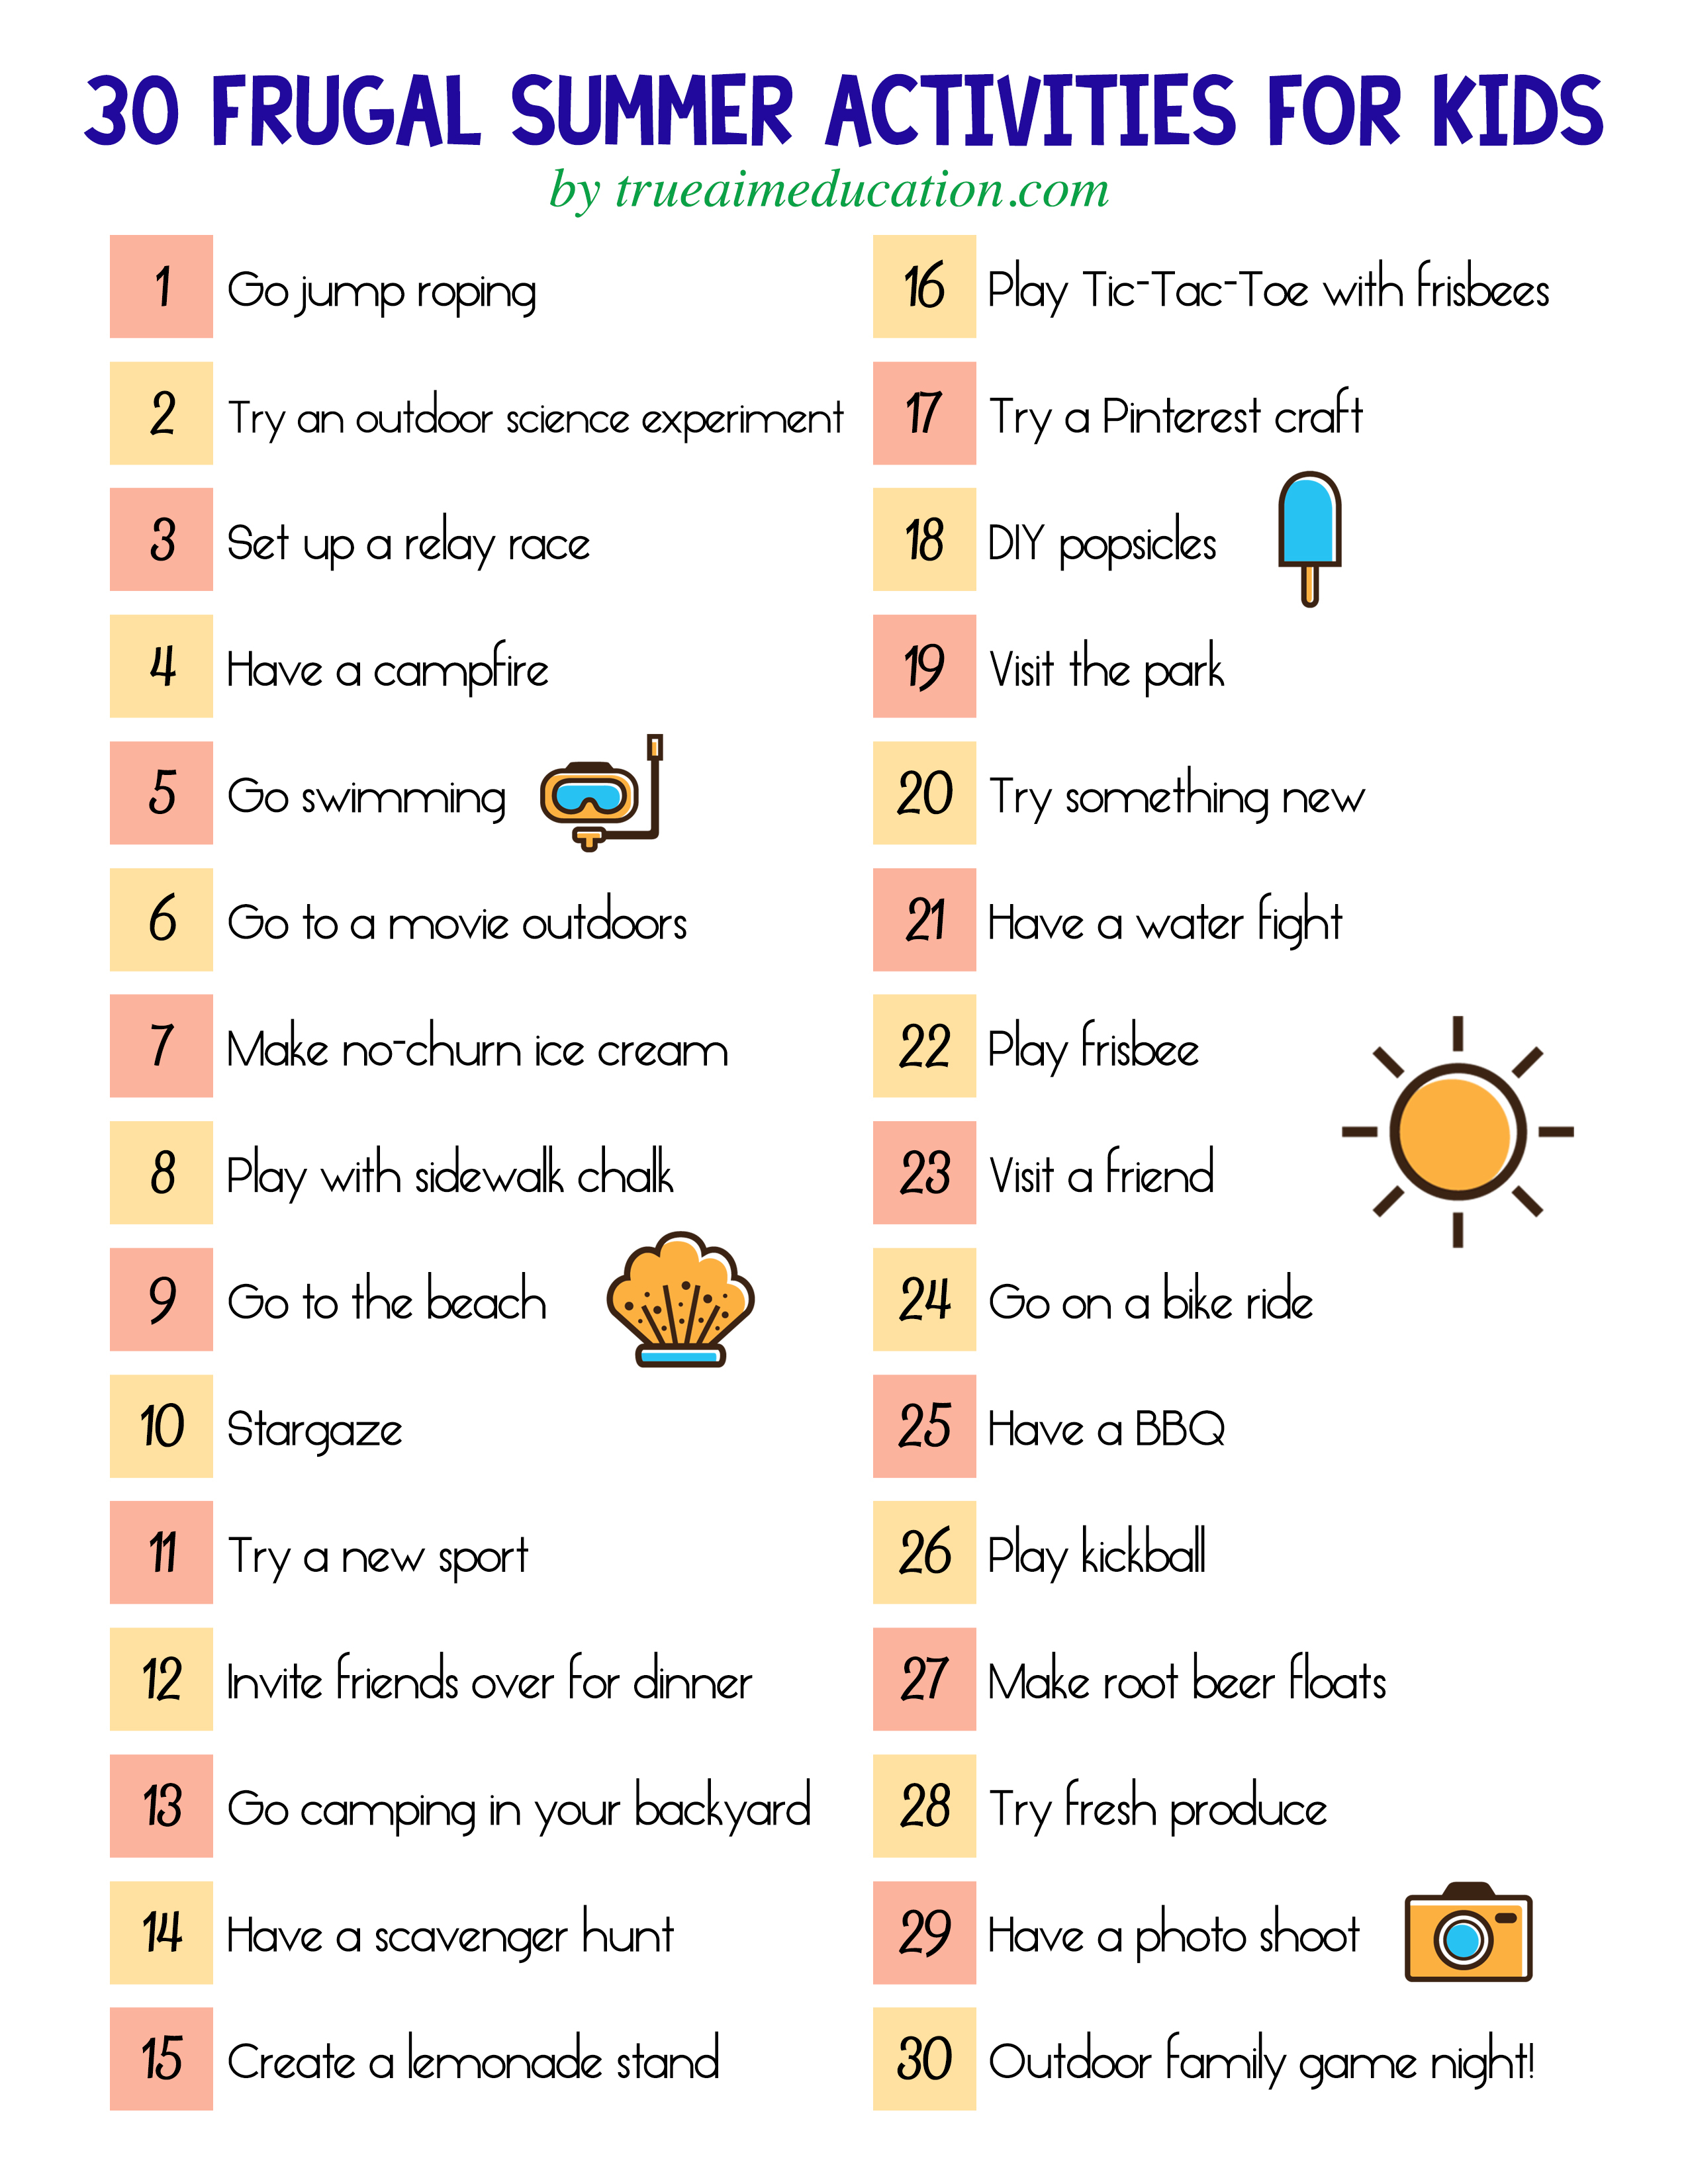 30 Frugal Summer Activities + A Free Printable within Summer Schedule Template For Kids